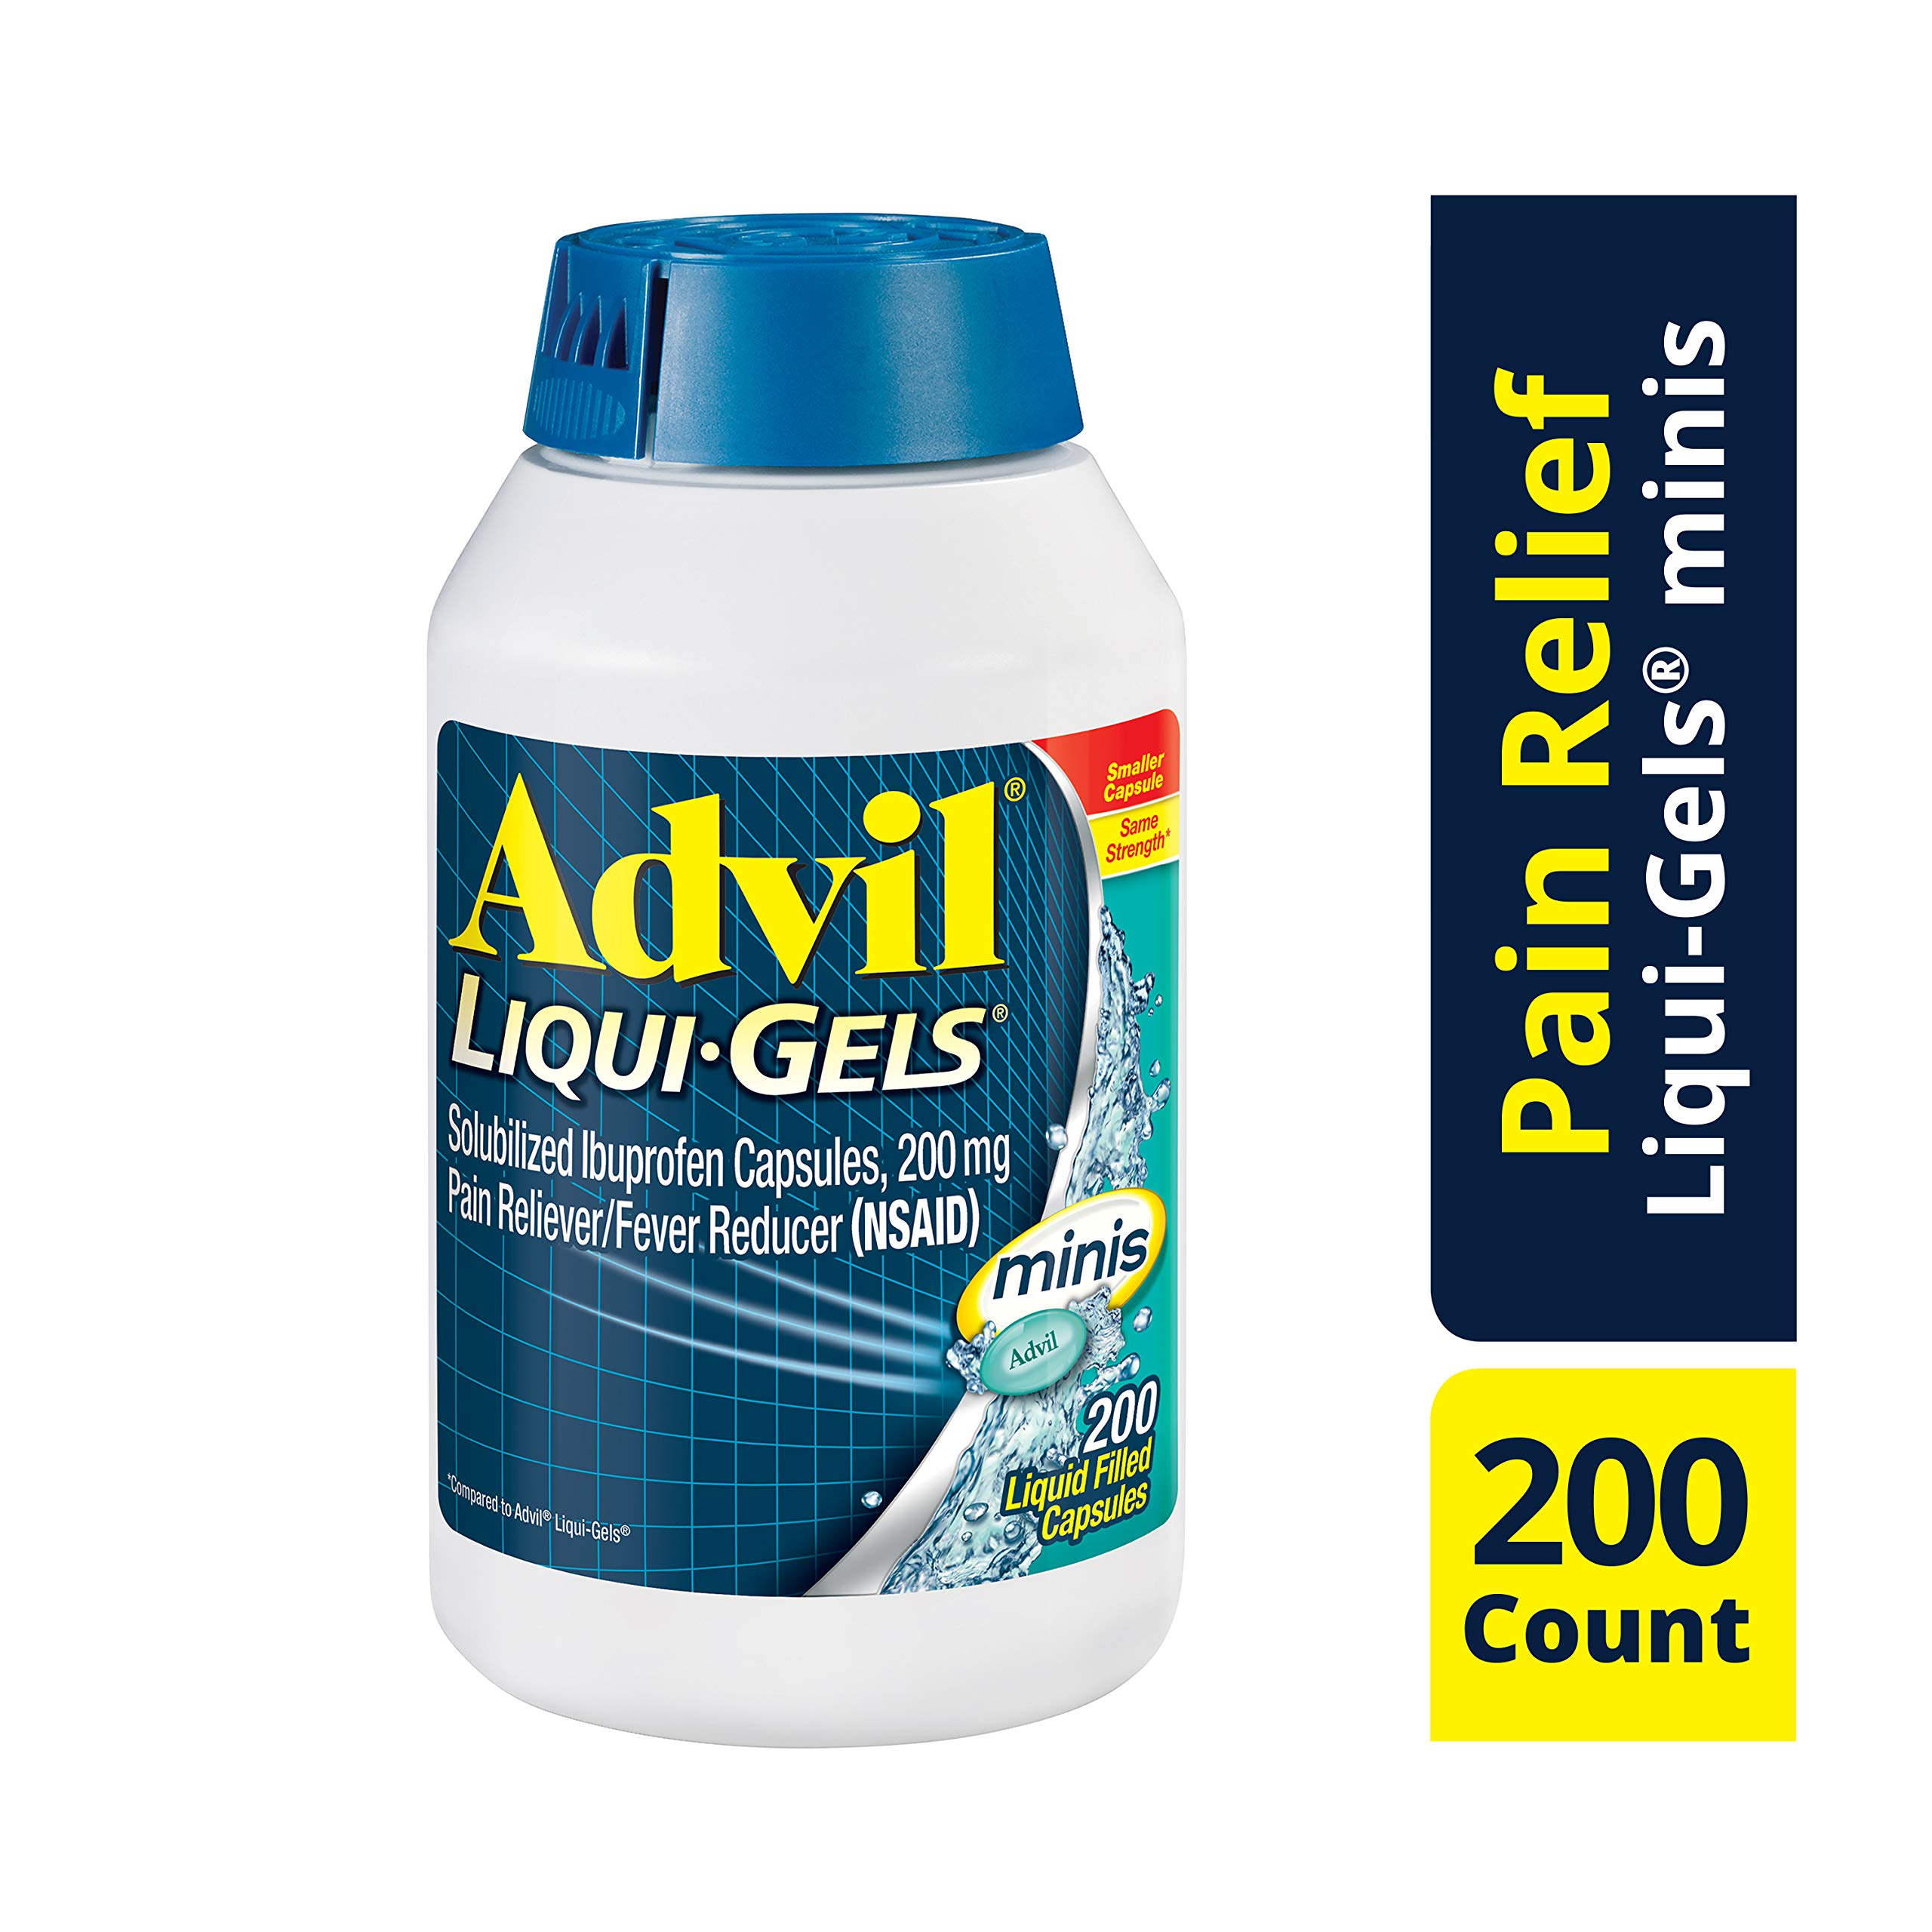 Advil Liqui-Gels Minis, 200 Count, Ibuprofen 200mg, Pain Reliever / Fever Reducer Liquid Filled Capsule, Fast Pain Relief For Headaches, Back Pain, and Muscle Pain, Easy to Swallow by Advil